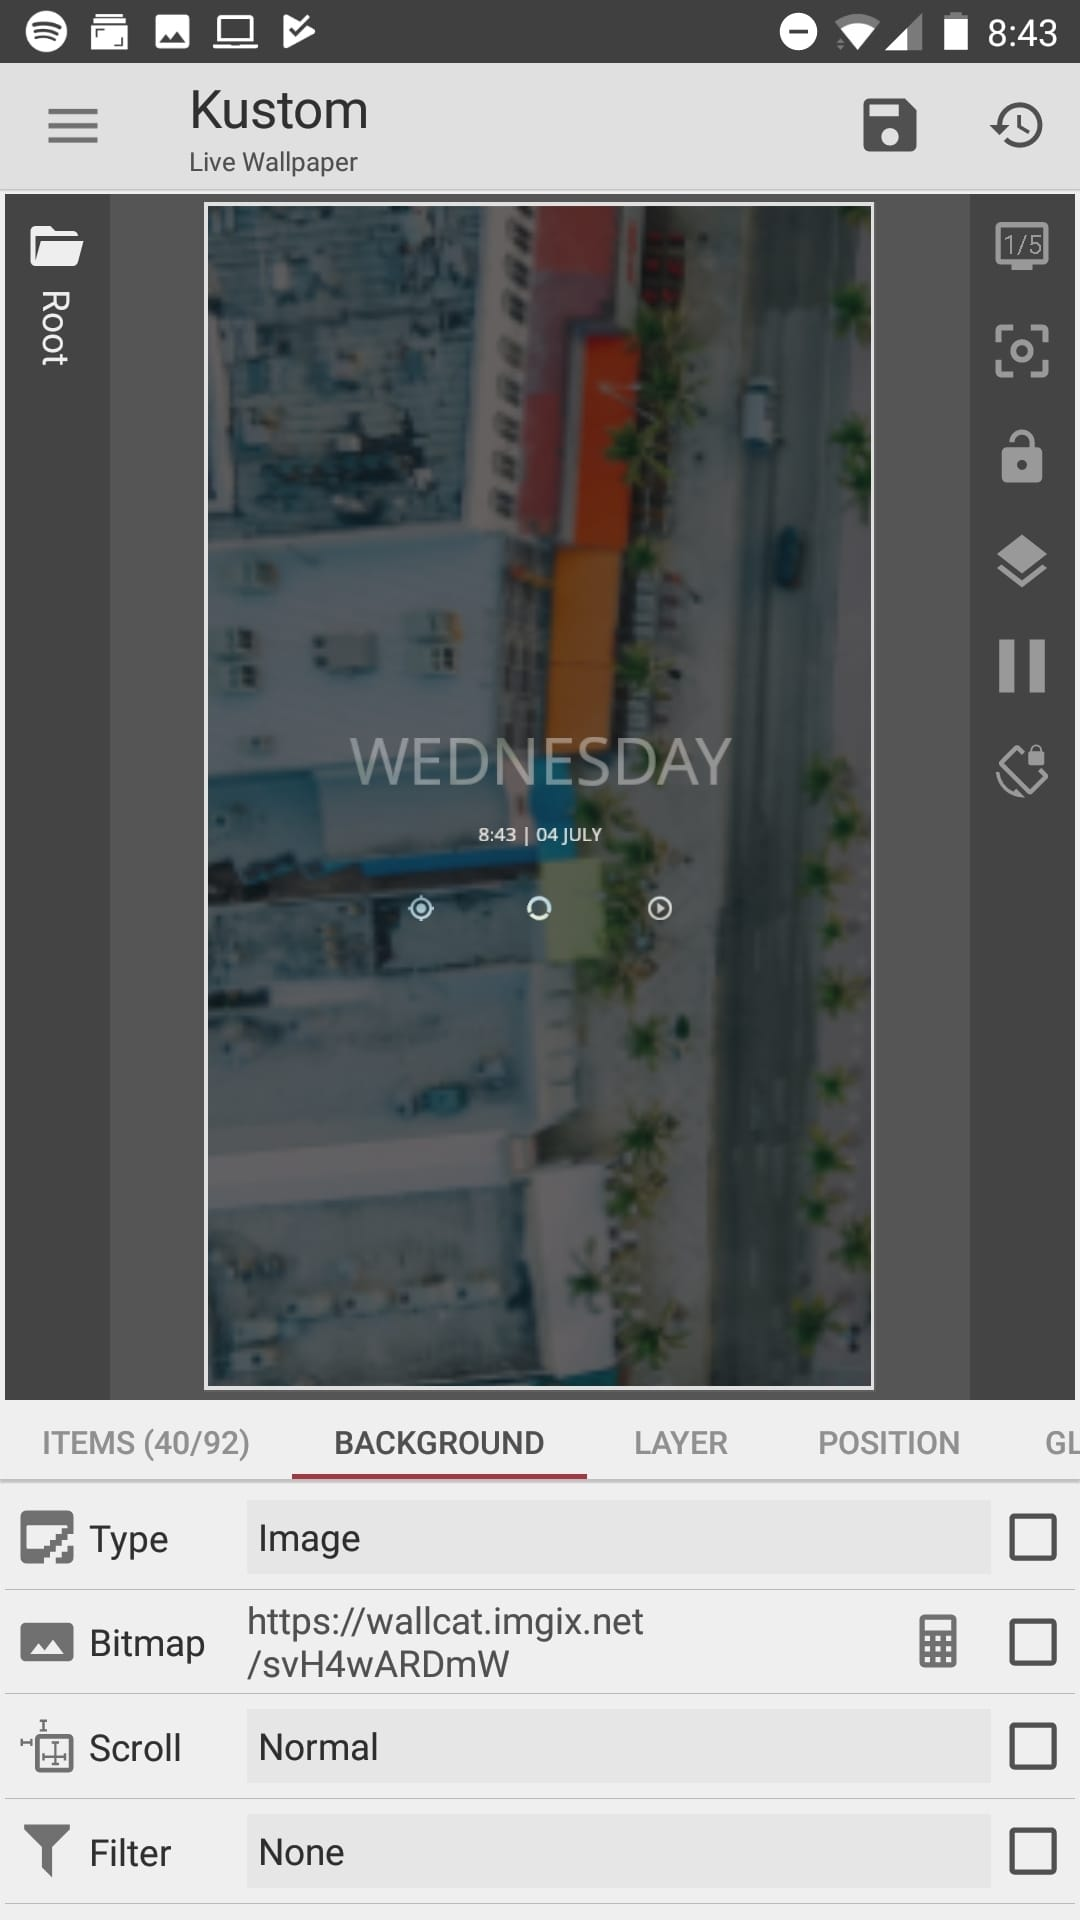 Screenshot of KWLP showing a preview of the homescreen